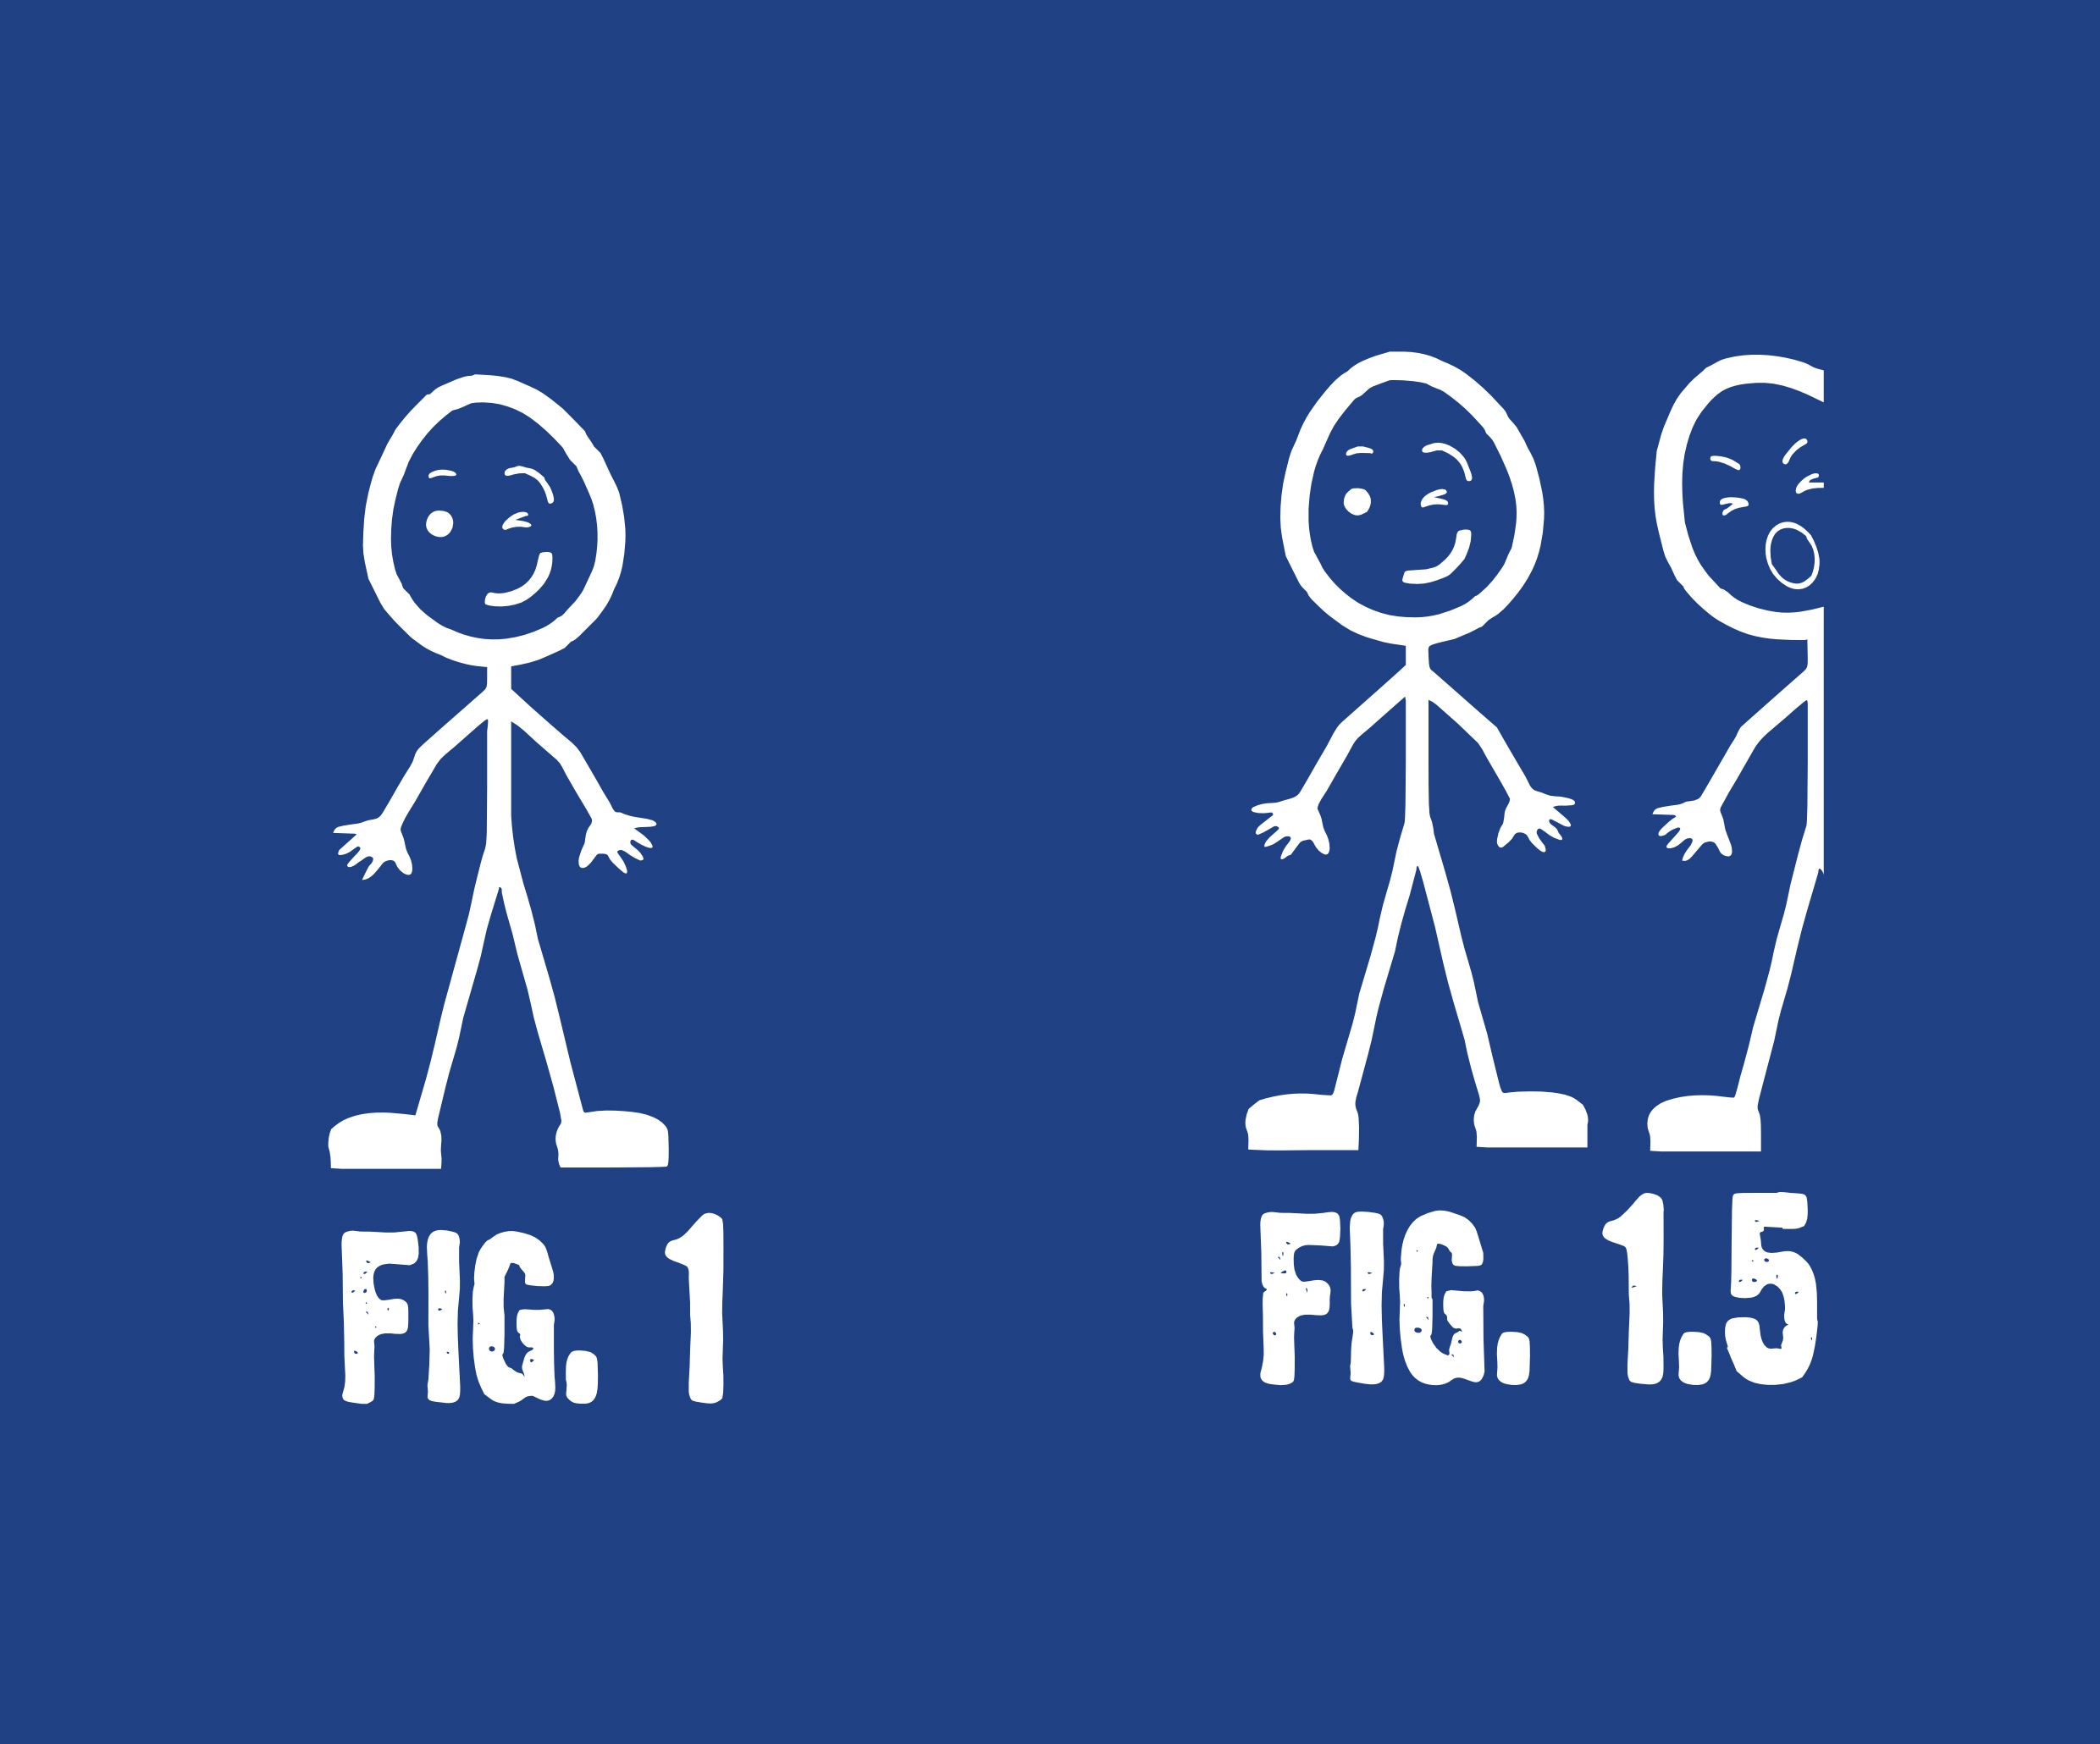 Fig 1.5 Literally!